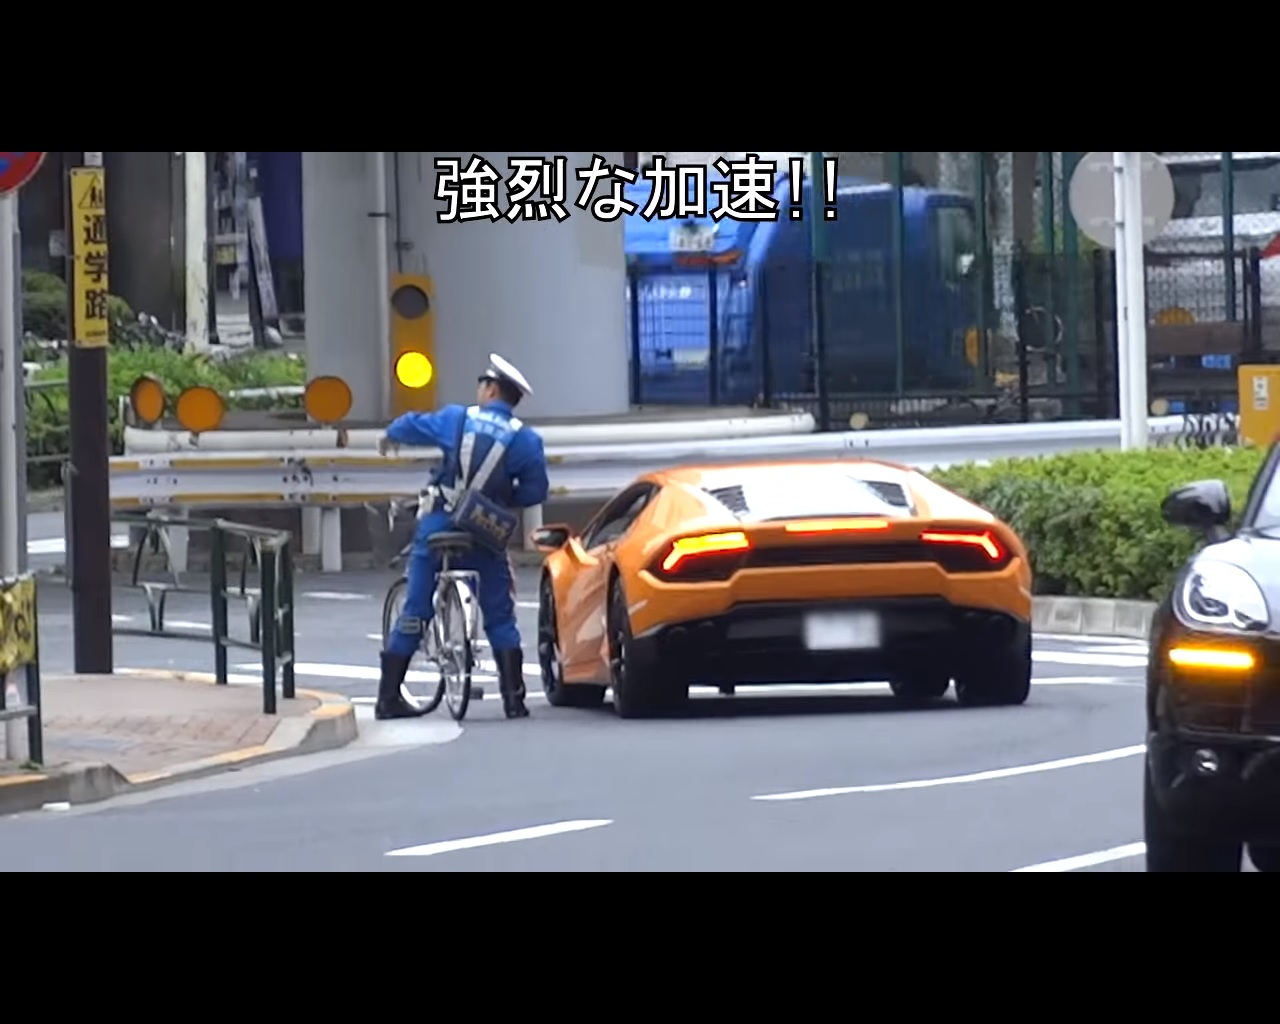 Japanese Patrol Officer On Bicycle Chases And Tickets Lamborghini